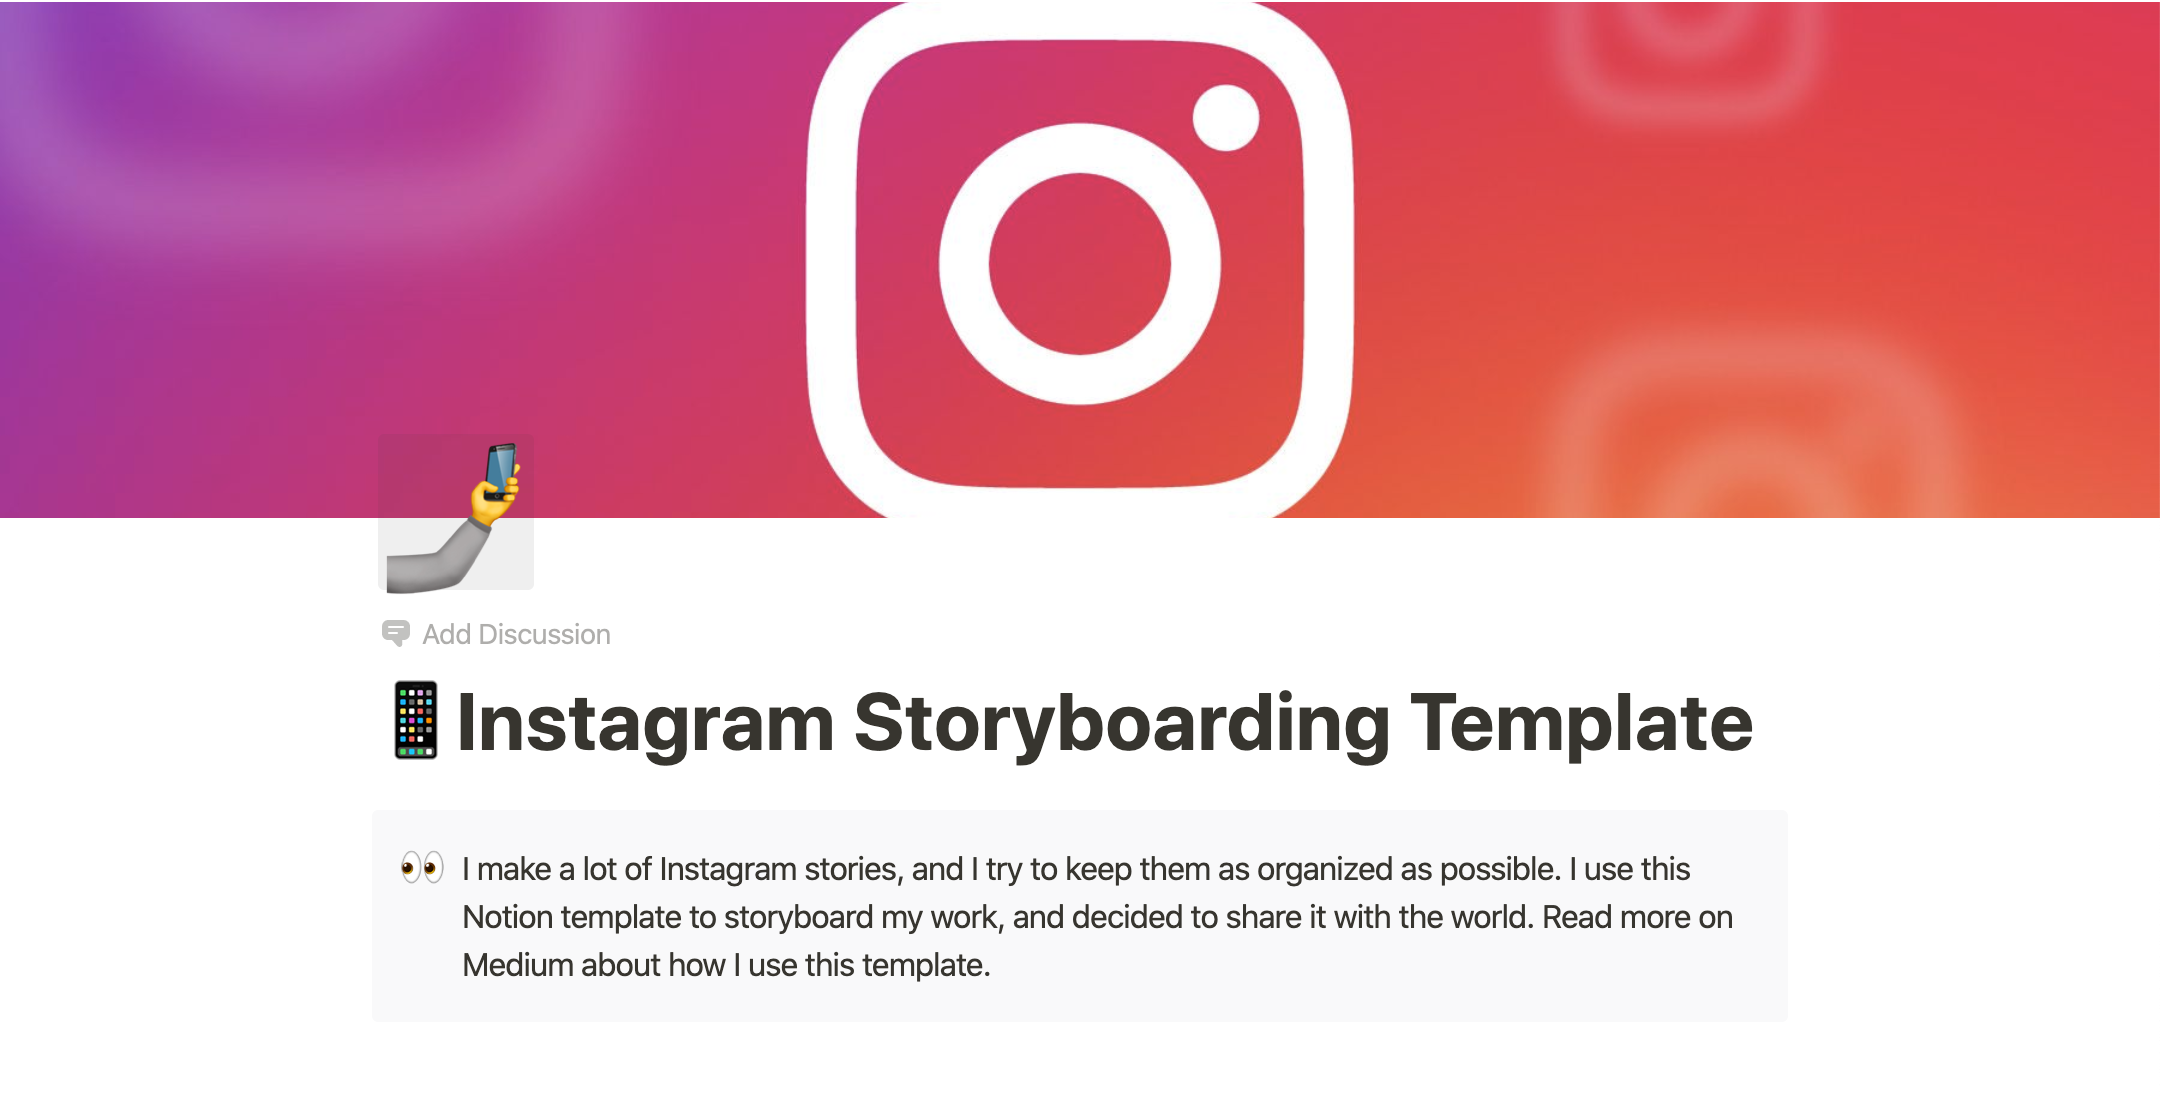 Shortcuts To InstaPortal Instagram Password Hacker That Only A Few Know About